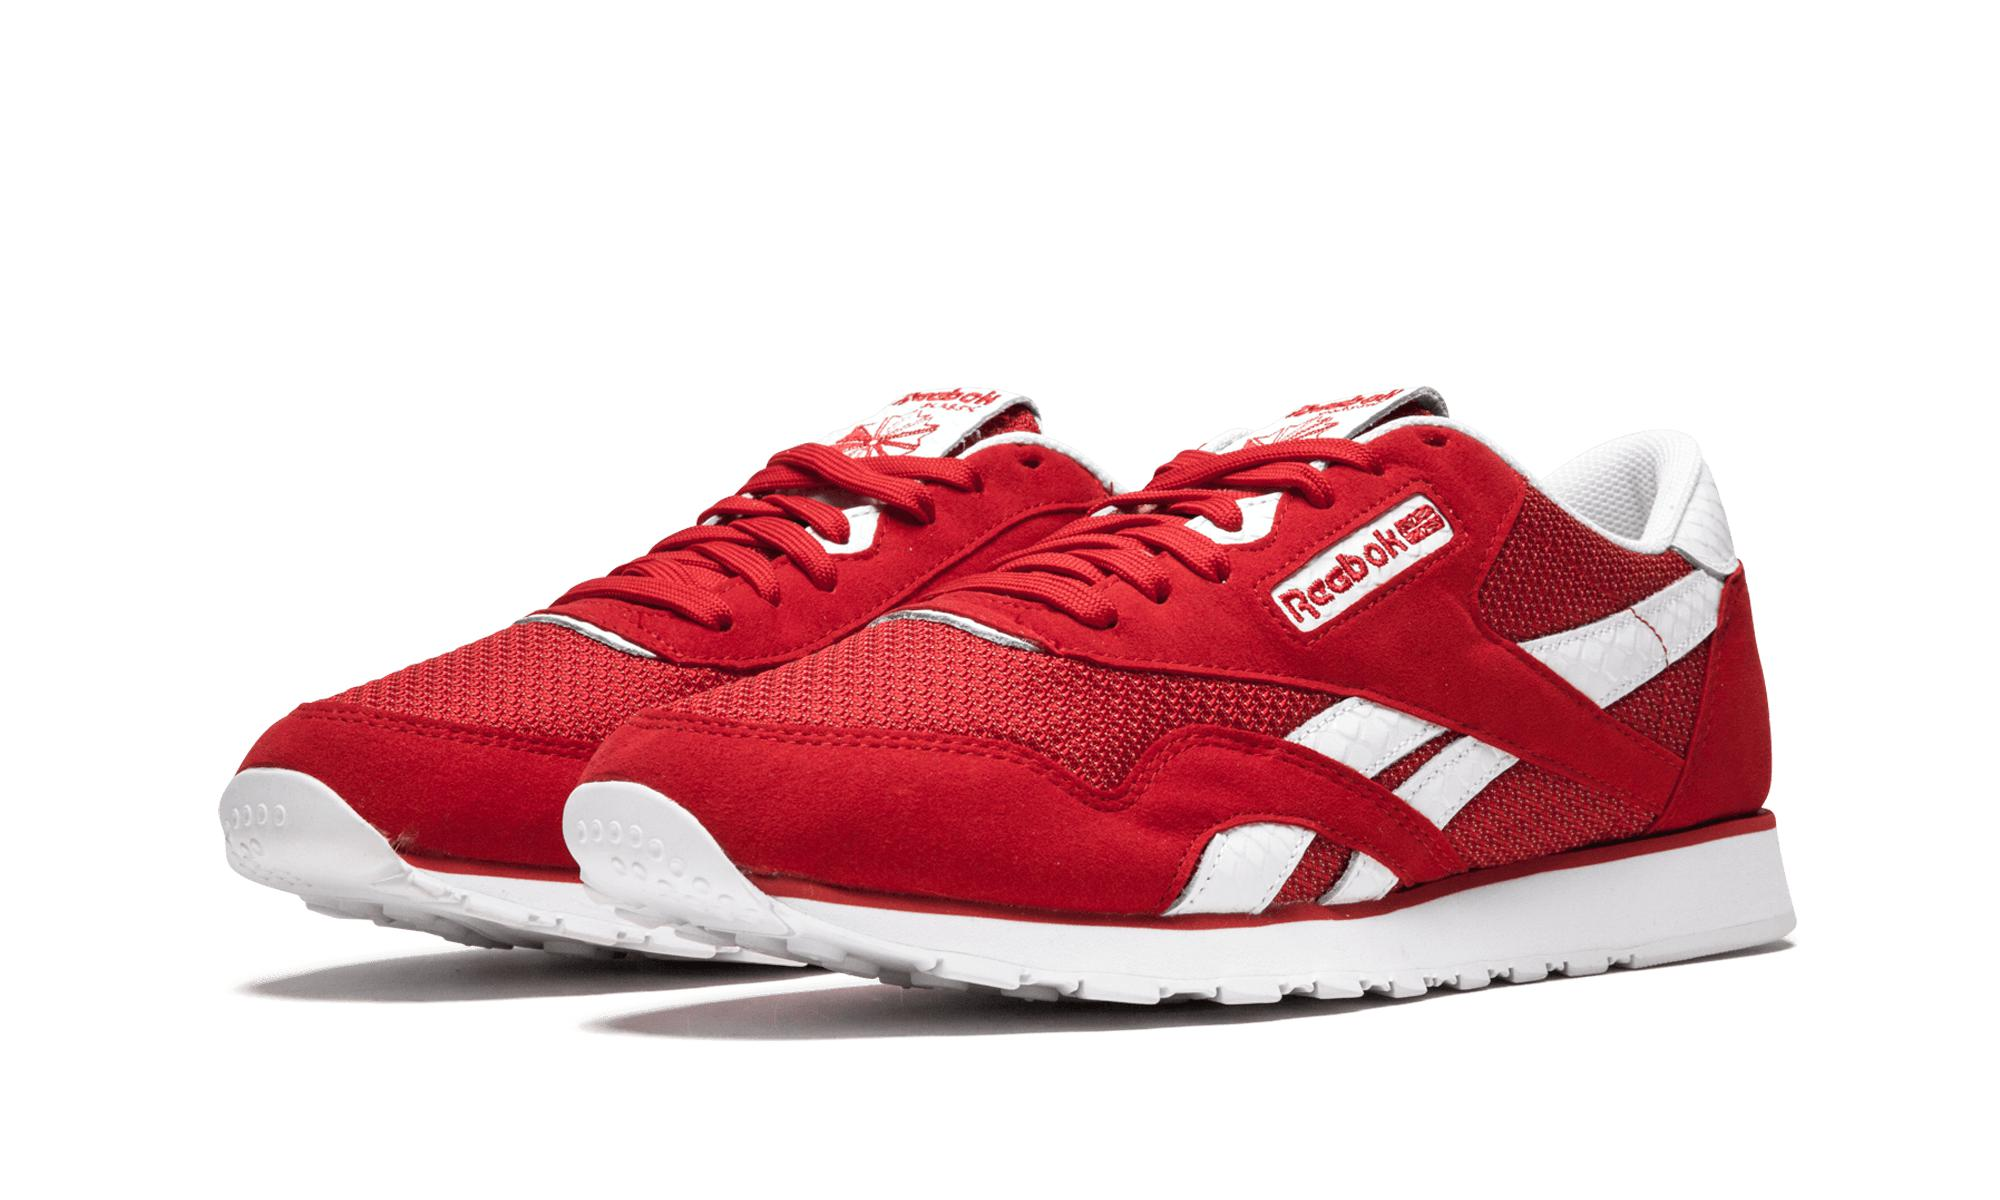 95431860850d9 Reebok Classic Nylon Bait X Yg in Red for Men - Lyst